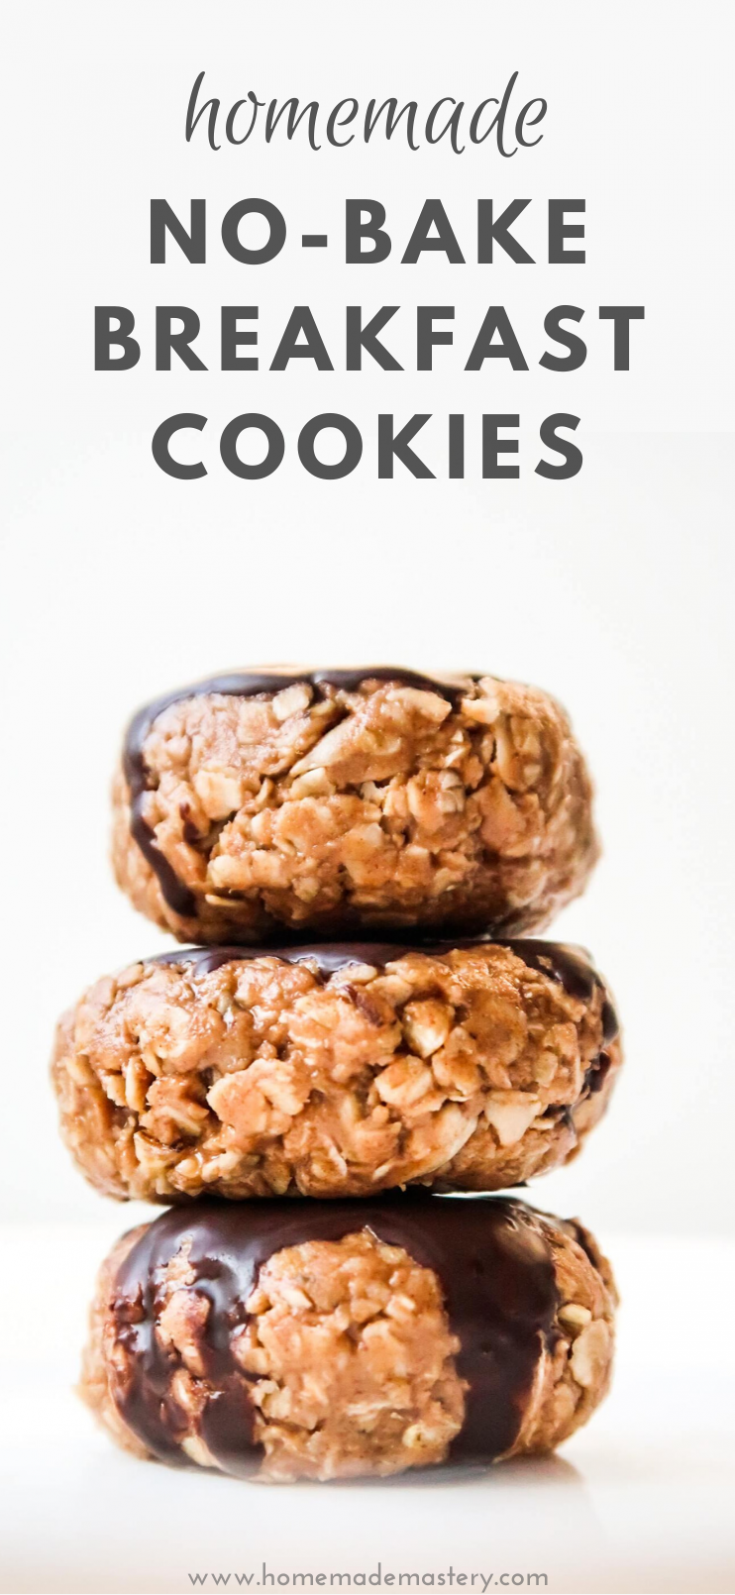 Easy homemade healthy breakfast cookies! These no-bake breakfast cookies are made in 10 minutes and can be made ahead for the whole week - great meal prep recipe for breakfast on the go.